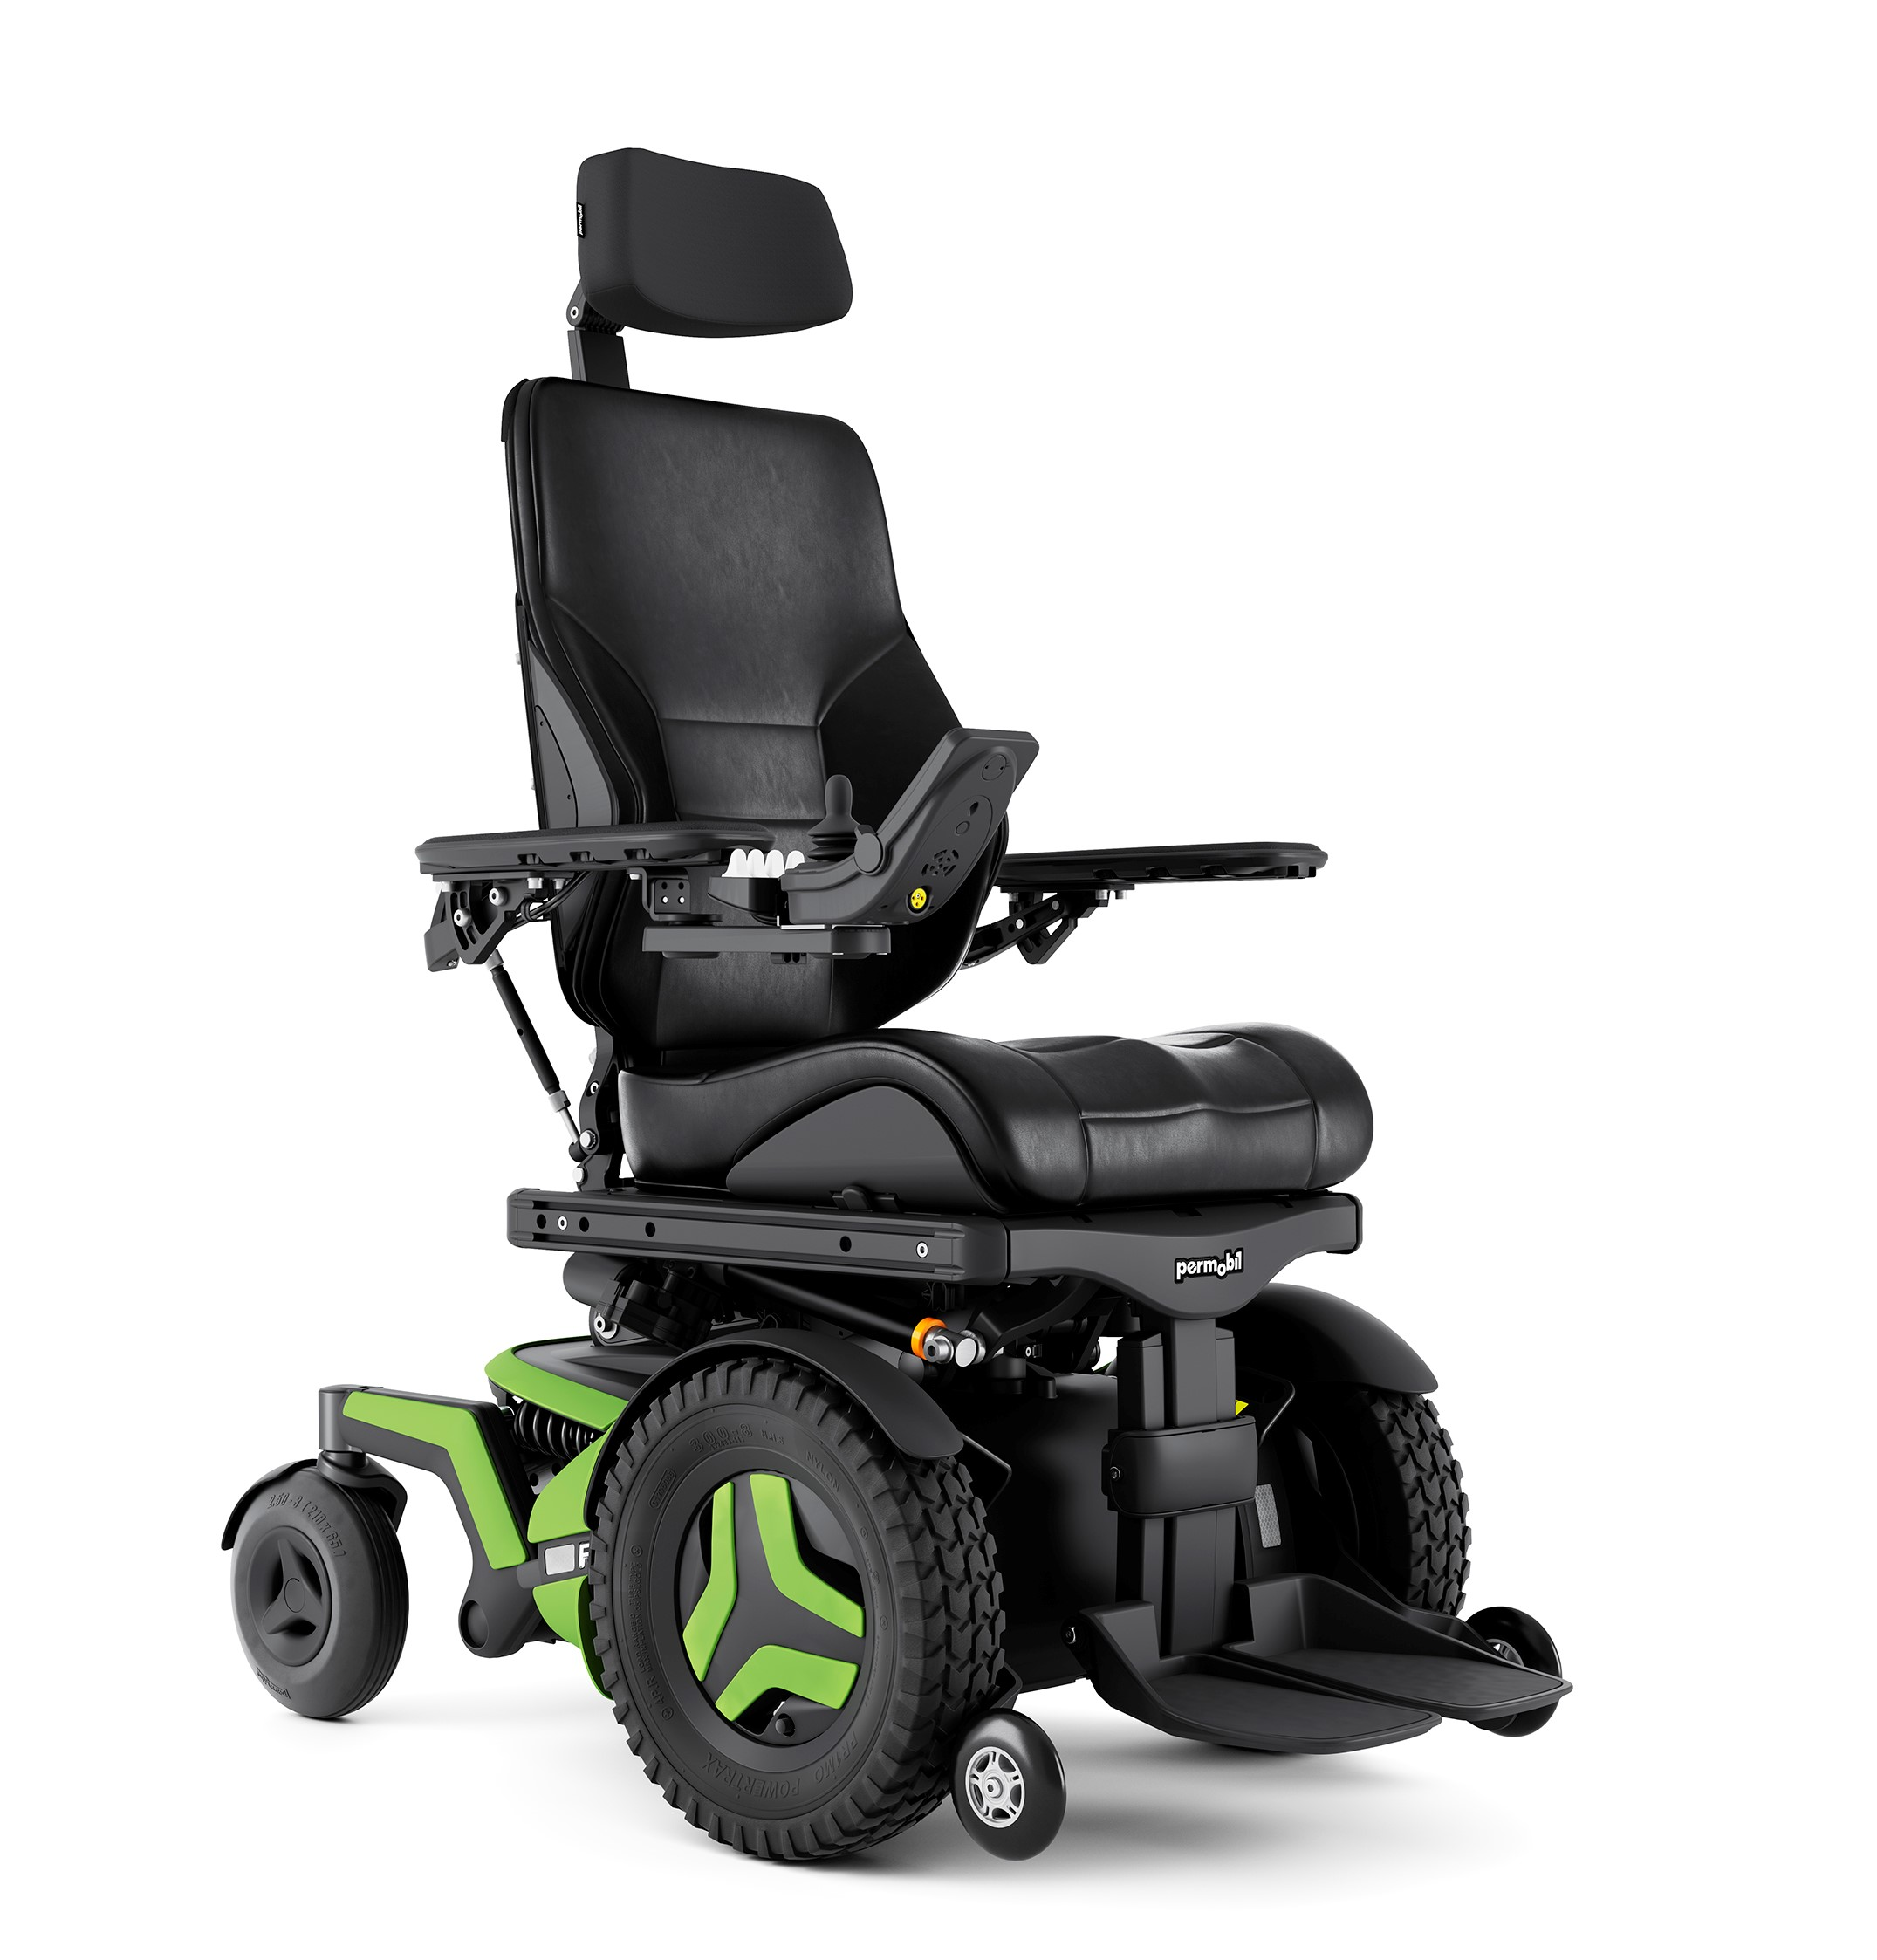 The F3 Corpus is shown at an angle. It has bright green accents and black rehab seating.